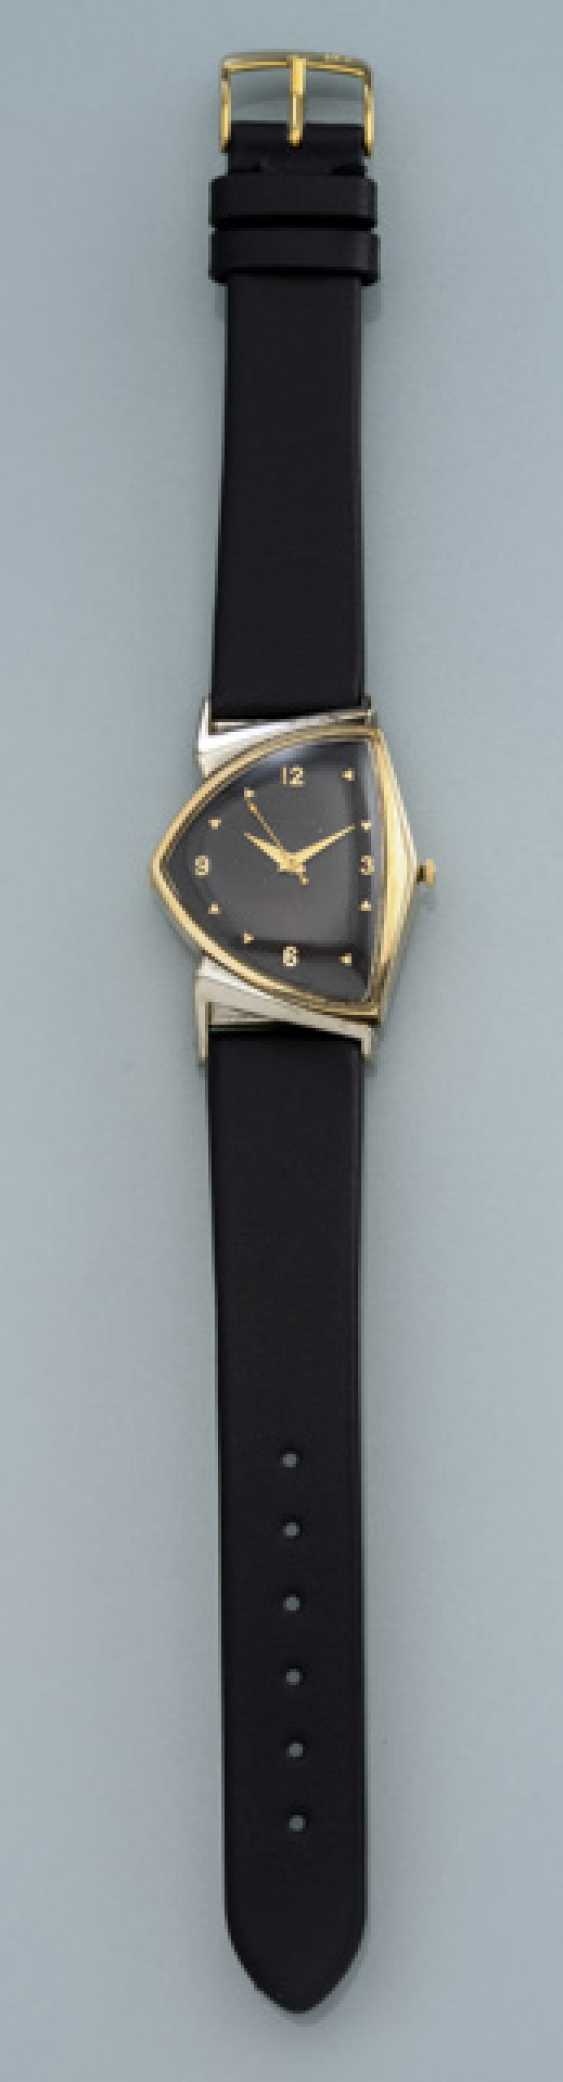 Hamilton Electric Pacer watch is made of 10K yellow gold - photo 1